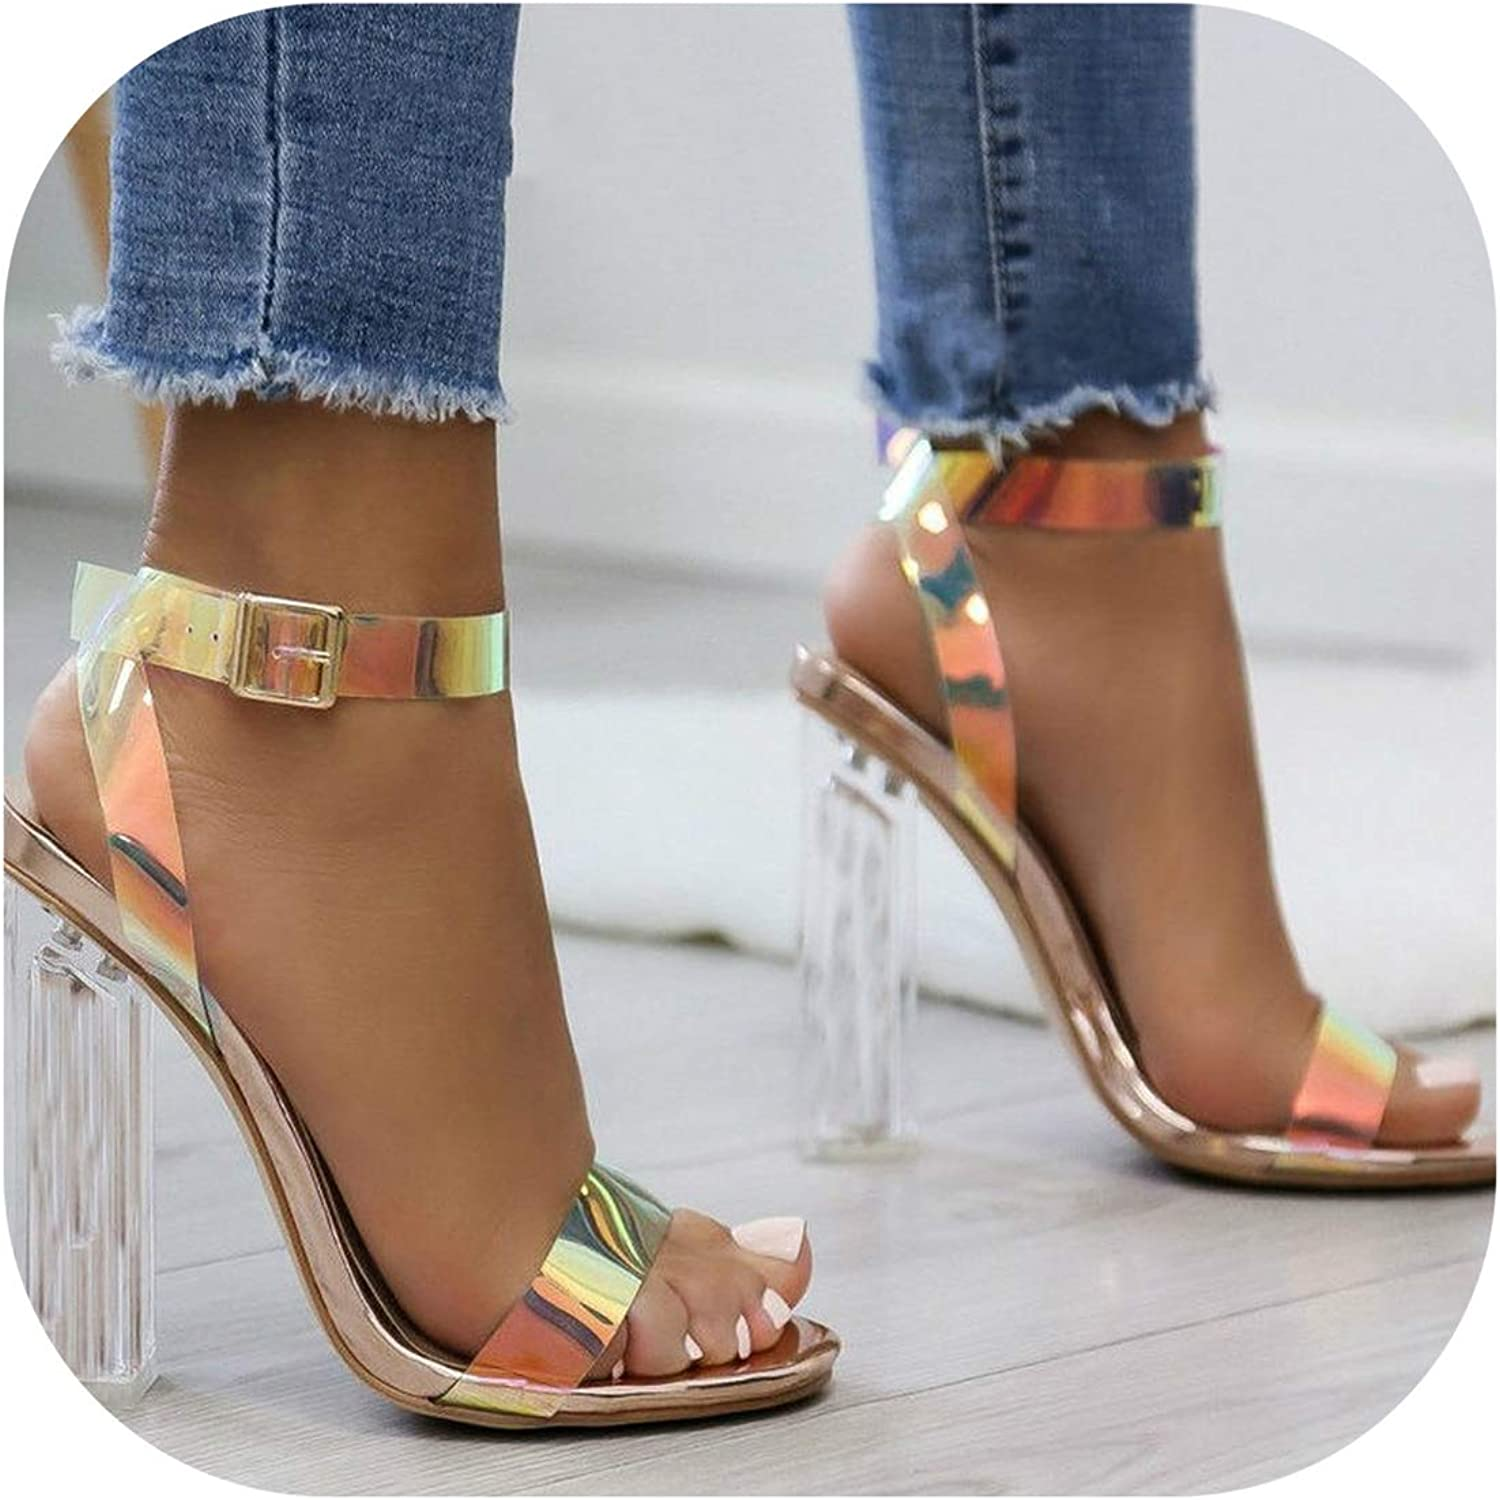 PVC Clear Transparent Strappy High Heels shoes Women Sandals Peep Toe Sexy Party Female Ladies shoes